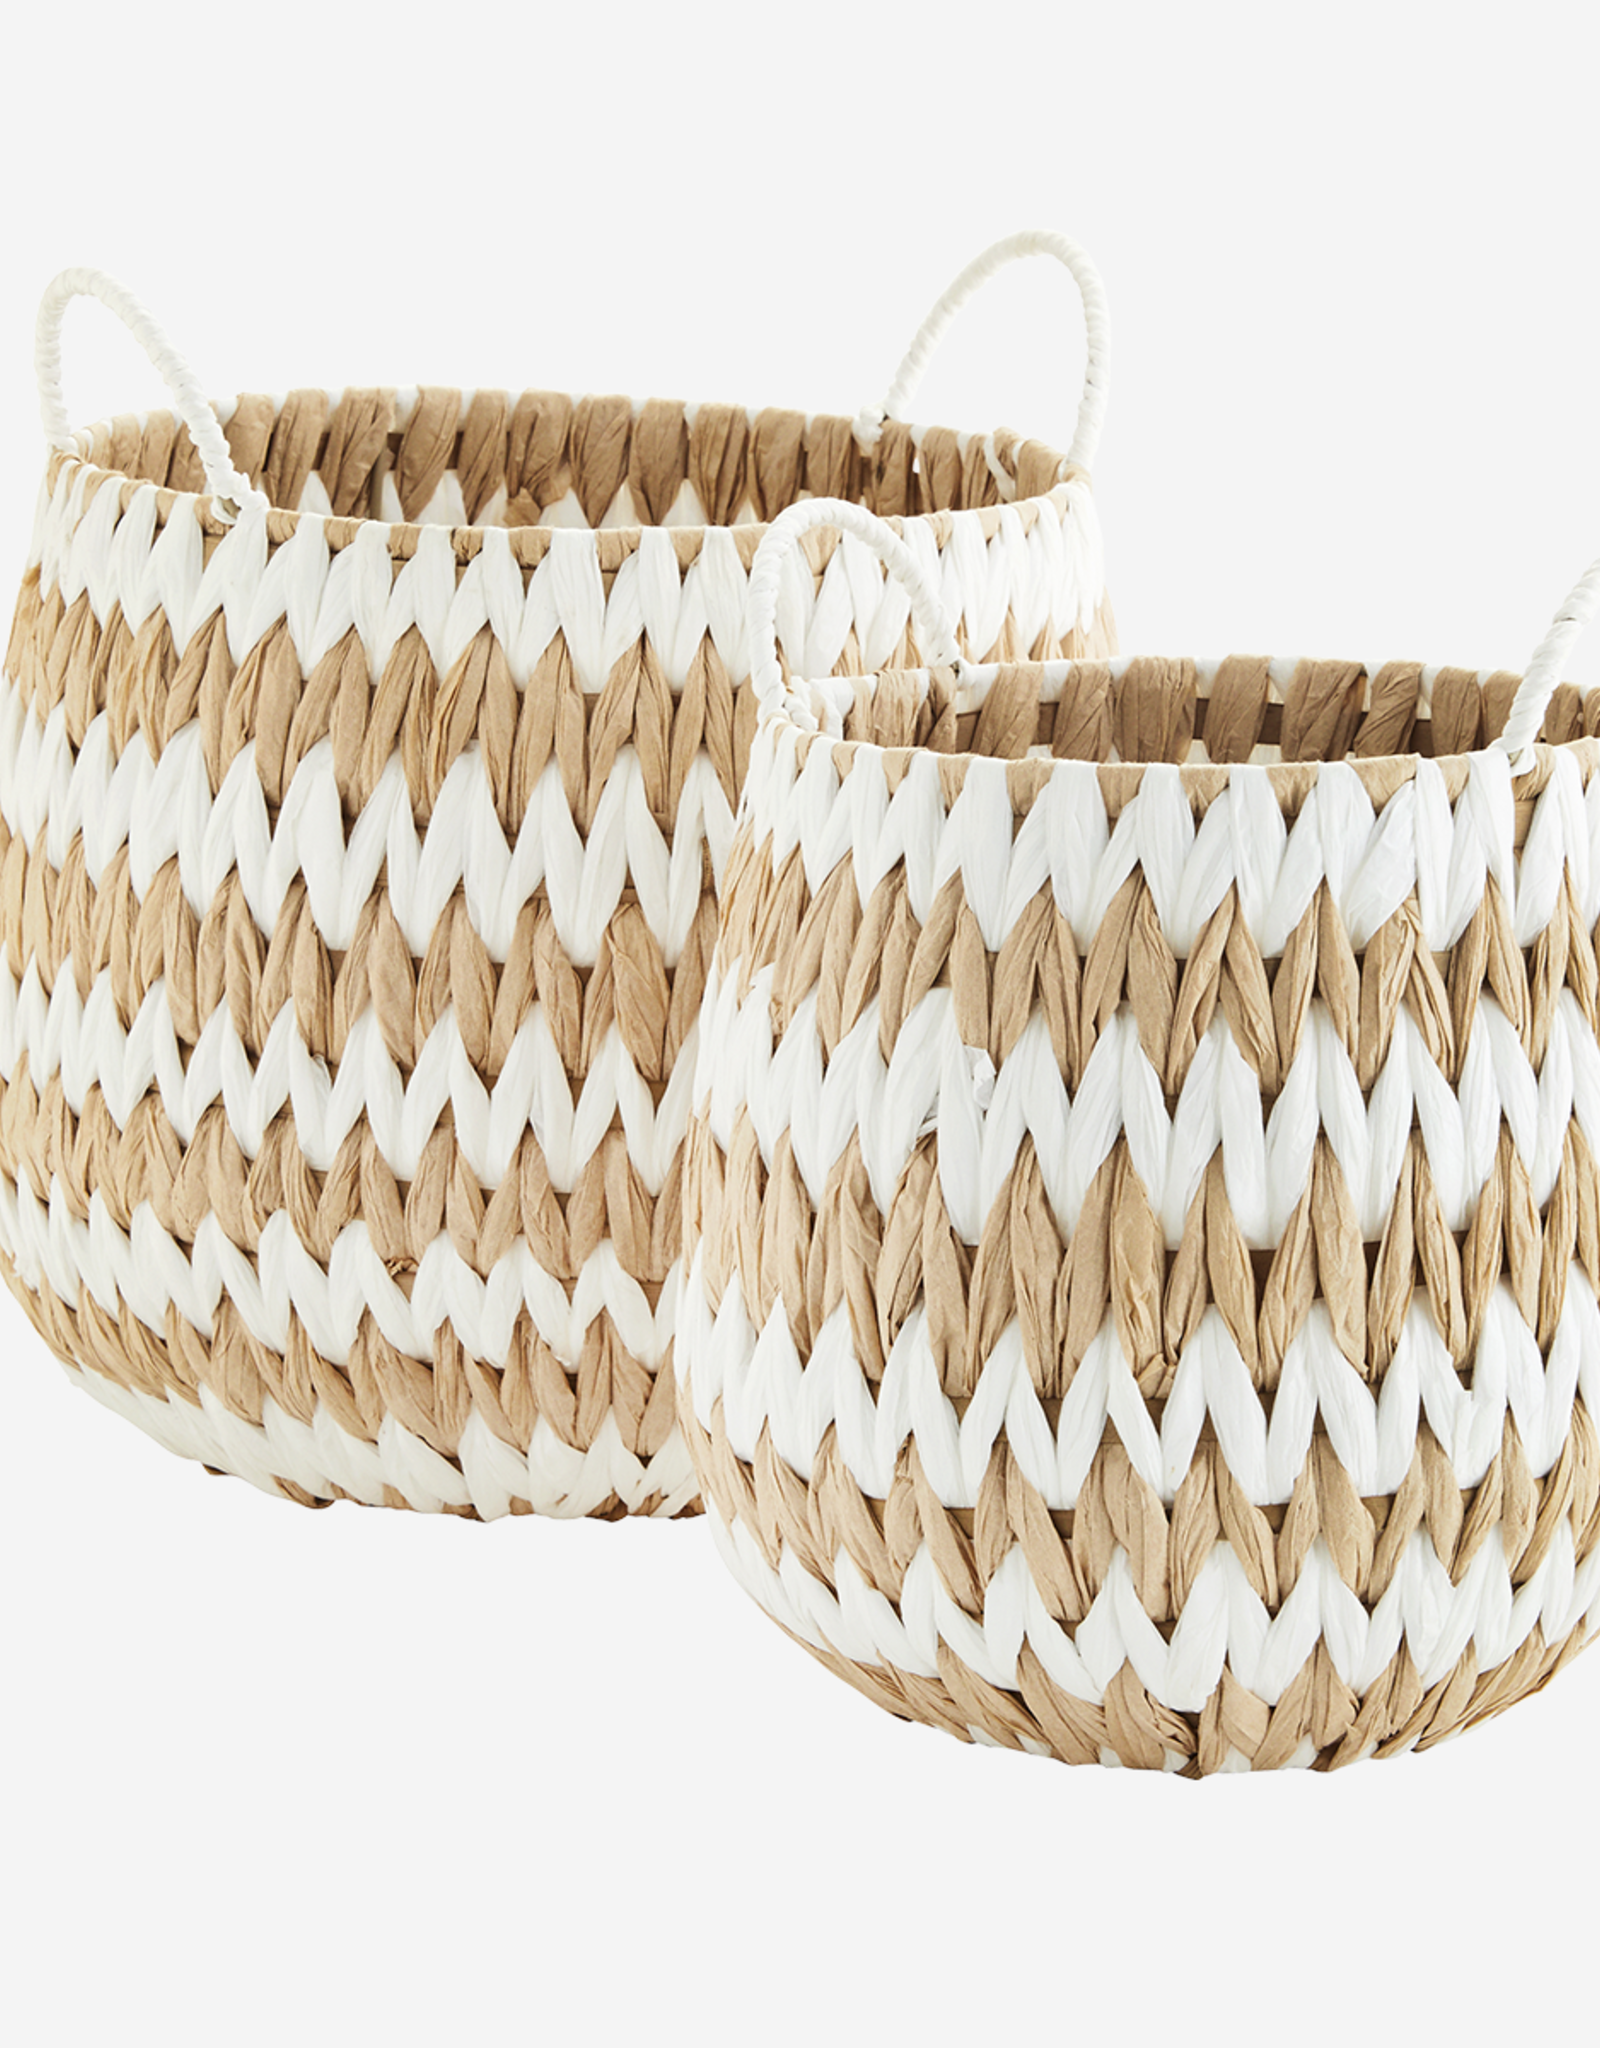 Madam Stoltz Madam Stoltz - Wicker baskets w/handles S - white